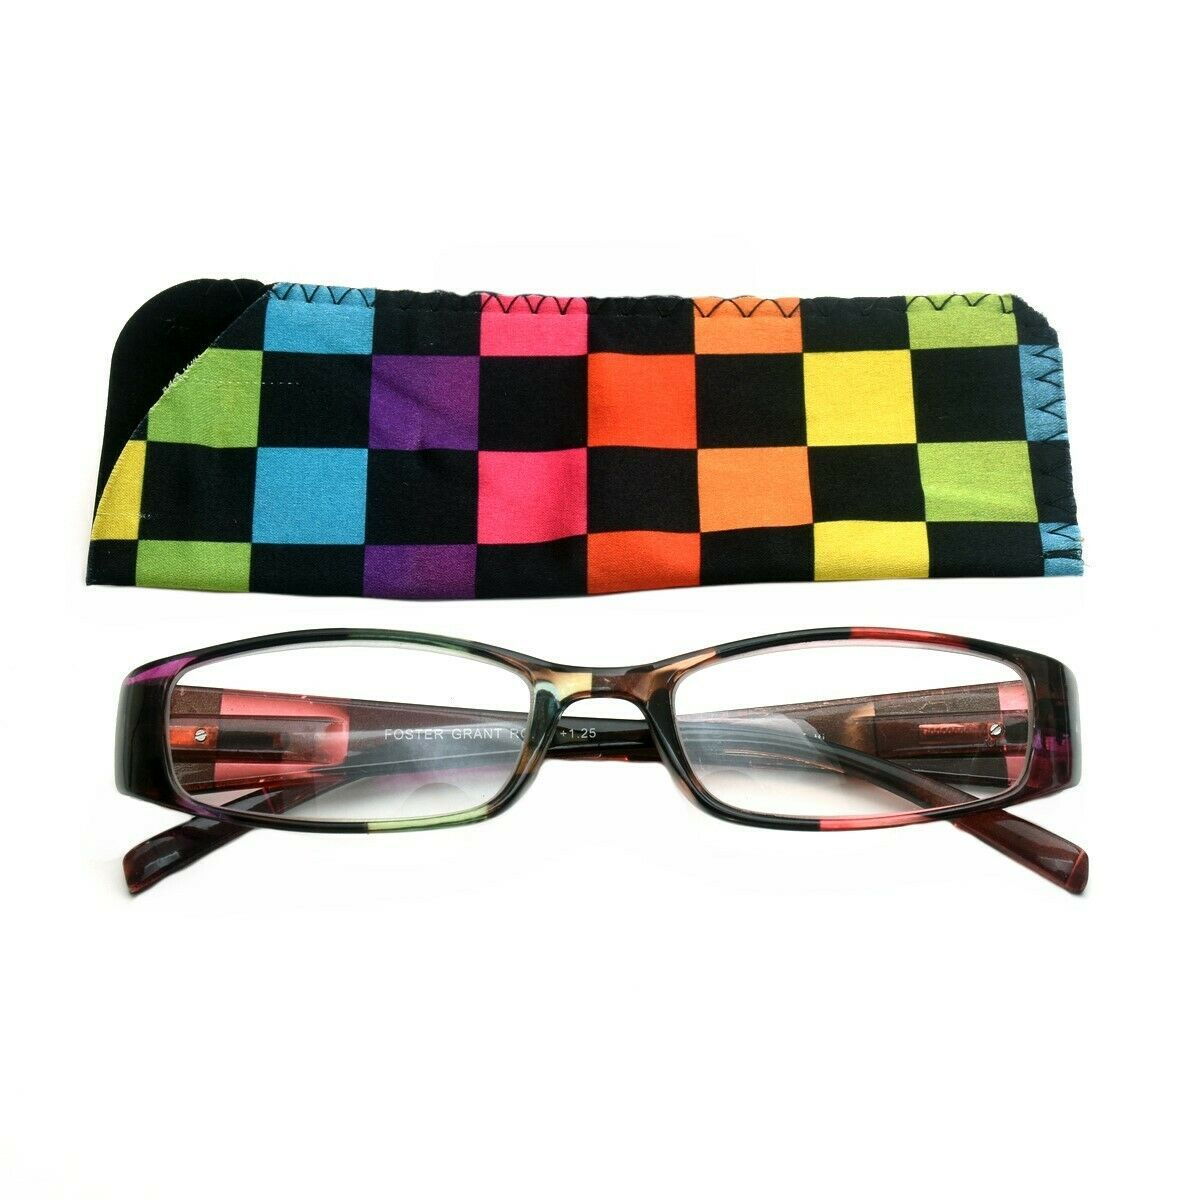 +2.75 Foster Grant Multicolor Reading Glasses Women Spring Hinge Soft Case - $7.95